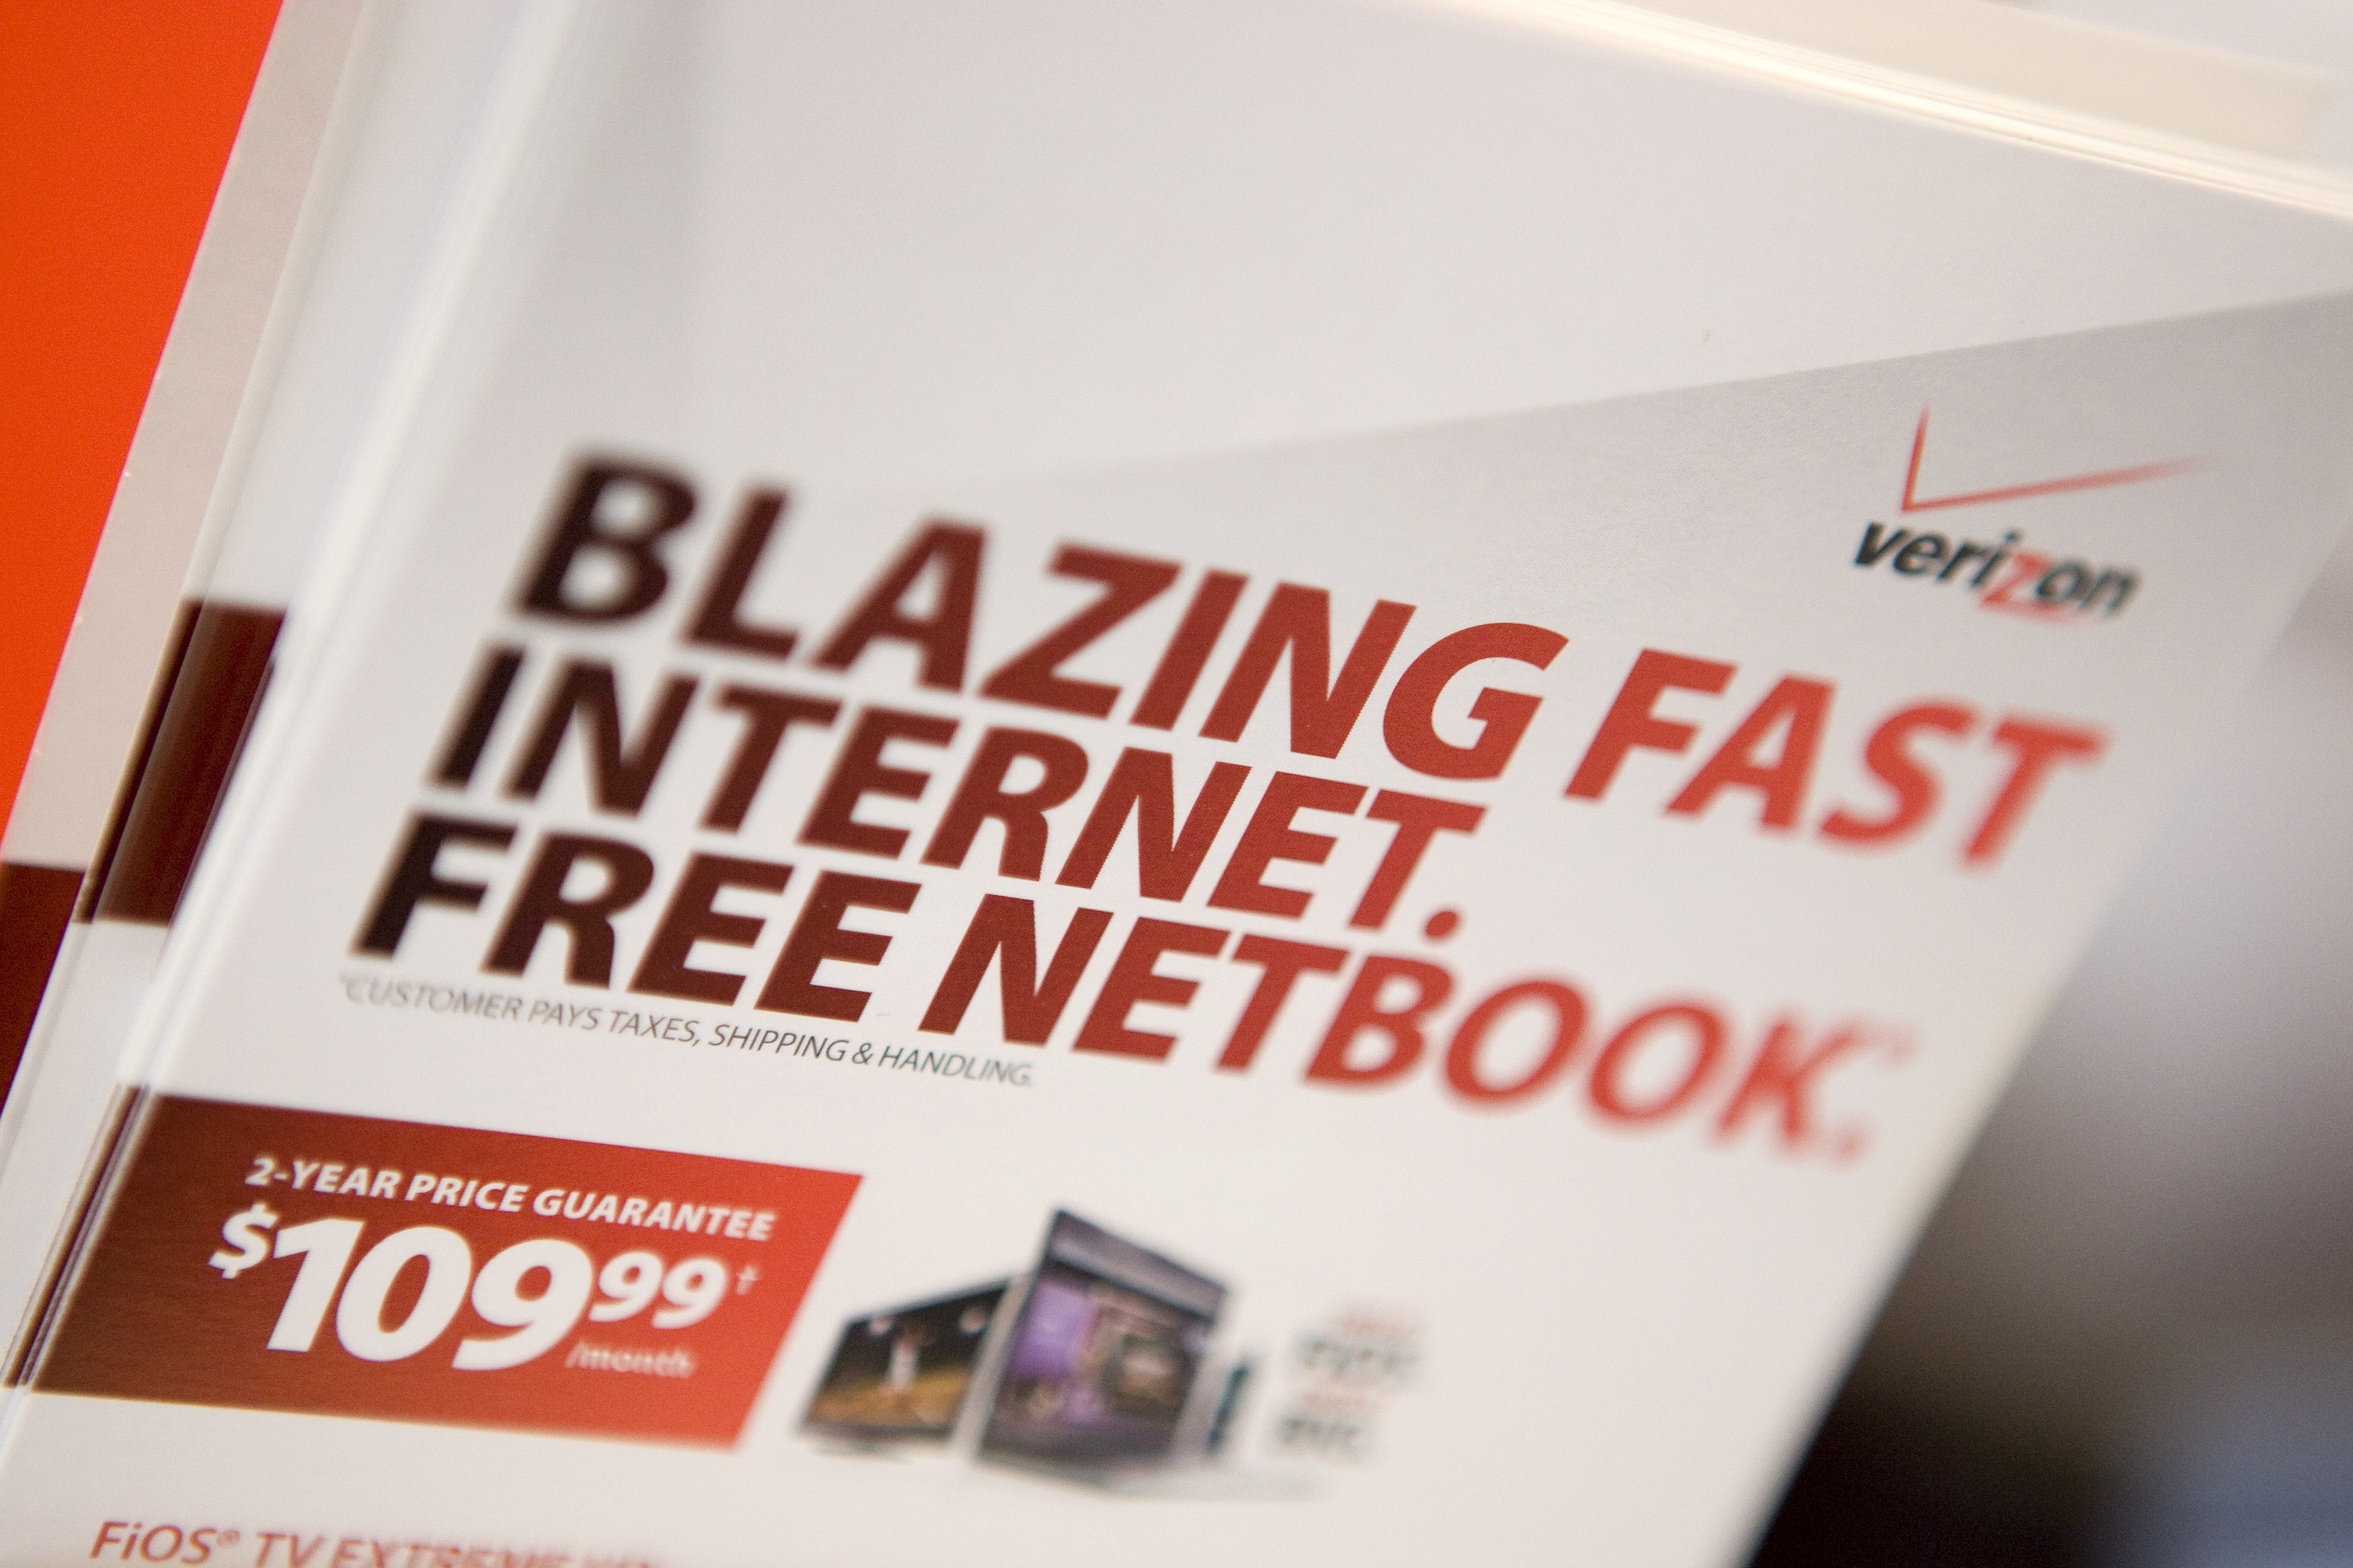 Brochures for Verizon FiOS and a free netbook sit inside a Verizon Wireless store in New York, U.S.